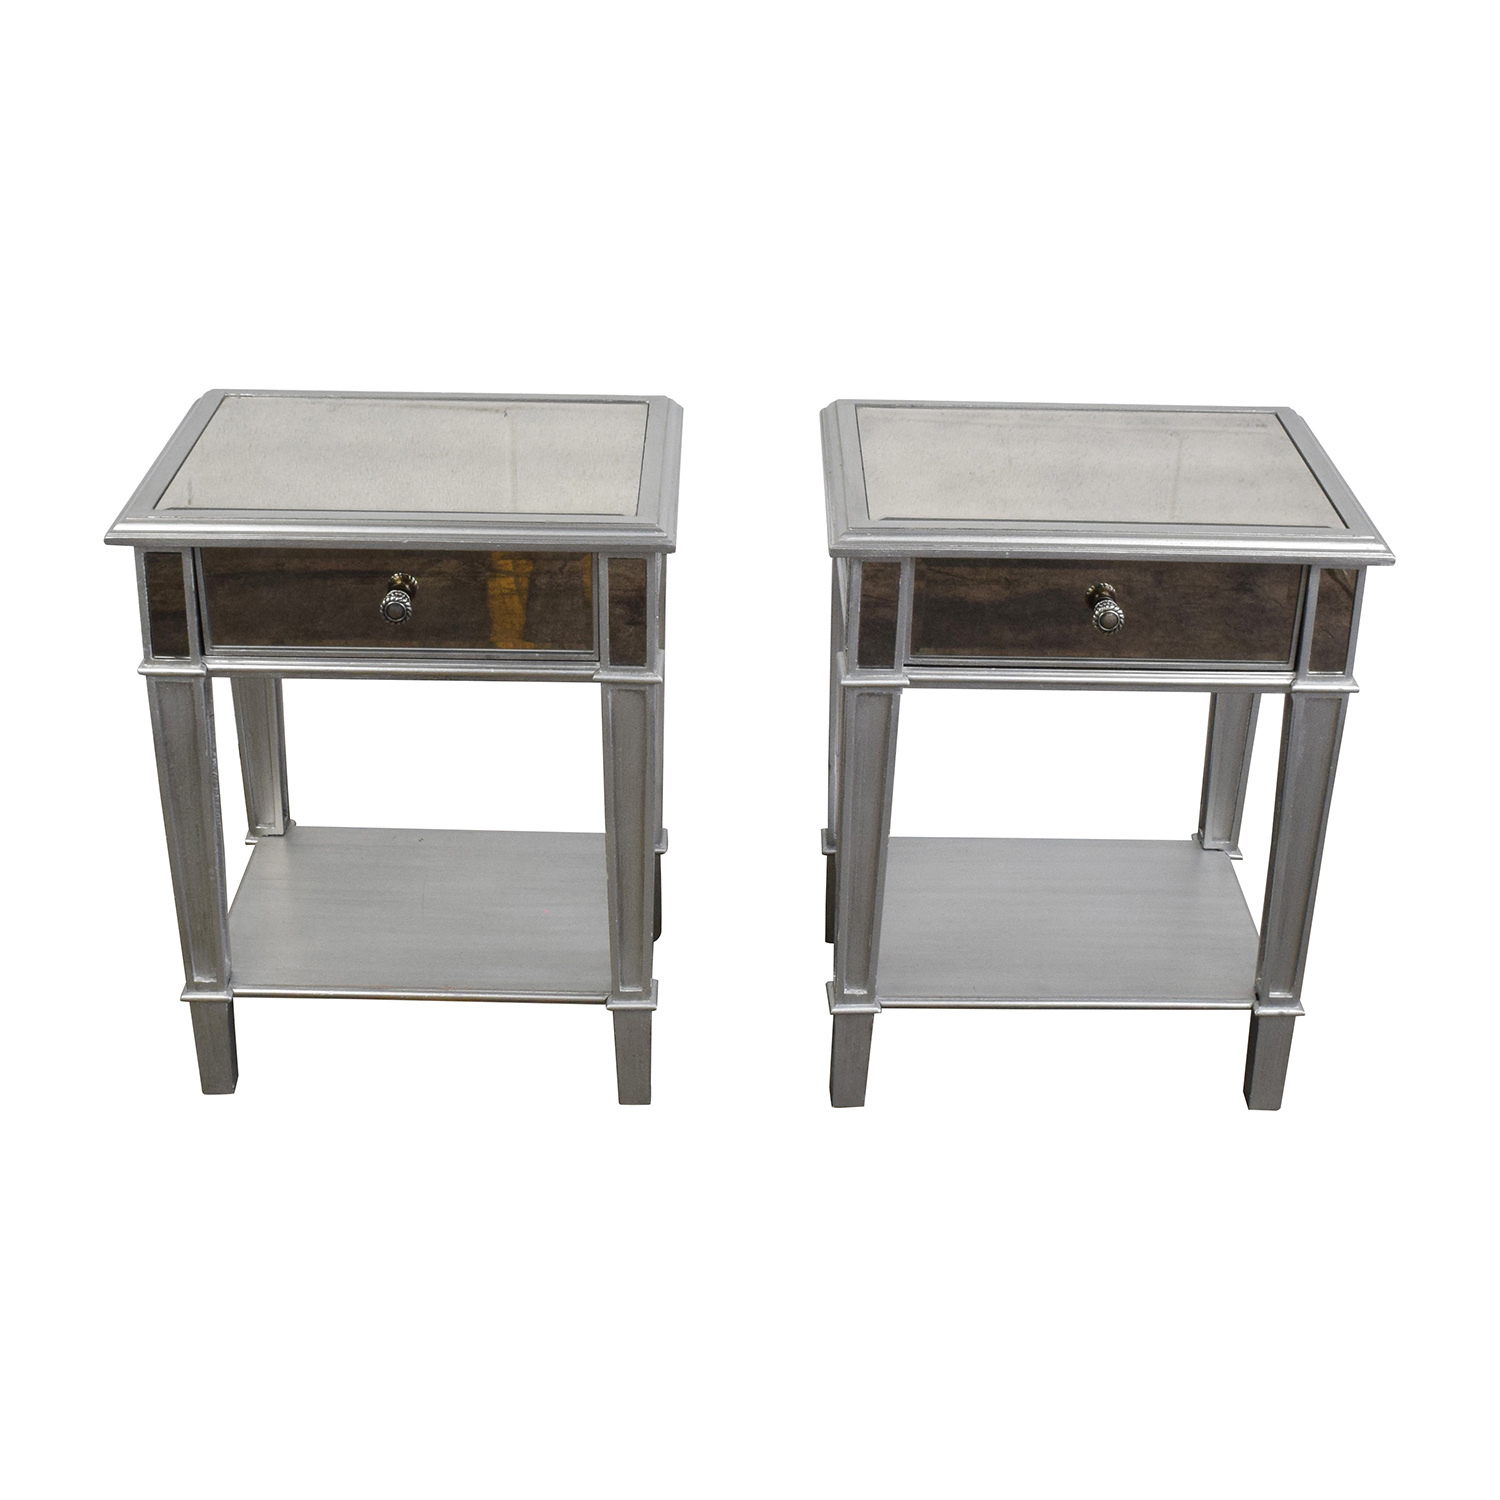 off pier hayward mirrored nightstands tables used accent tiffany dragonfly table lamp west elm coupon code ethan allen ballan mid century modern dining chairs folding bistro one